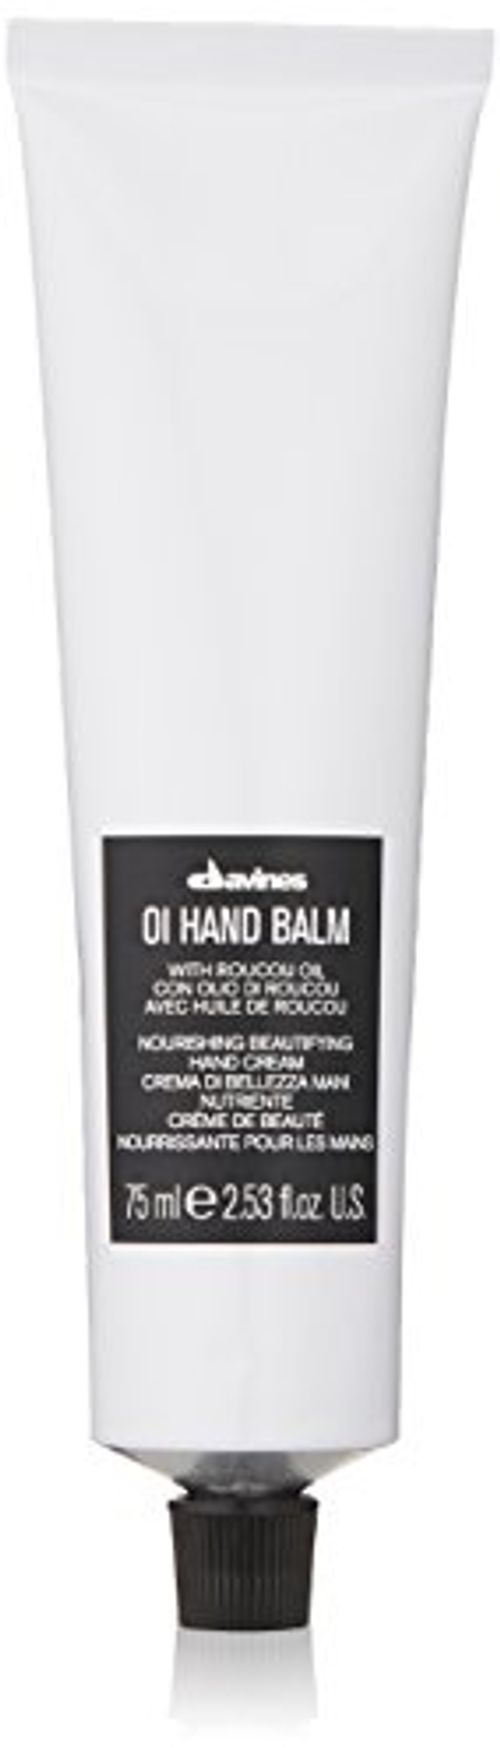 photo Wallpaper of Davines-Davines OI Hand Balm 75ml-